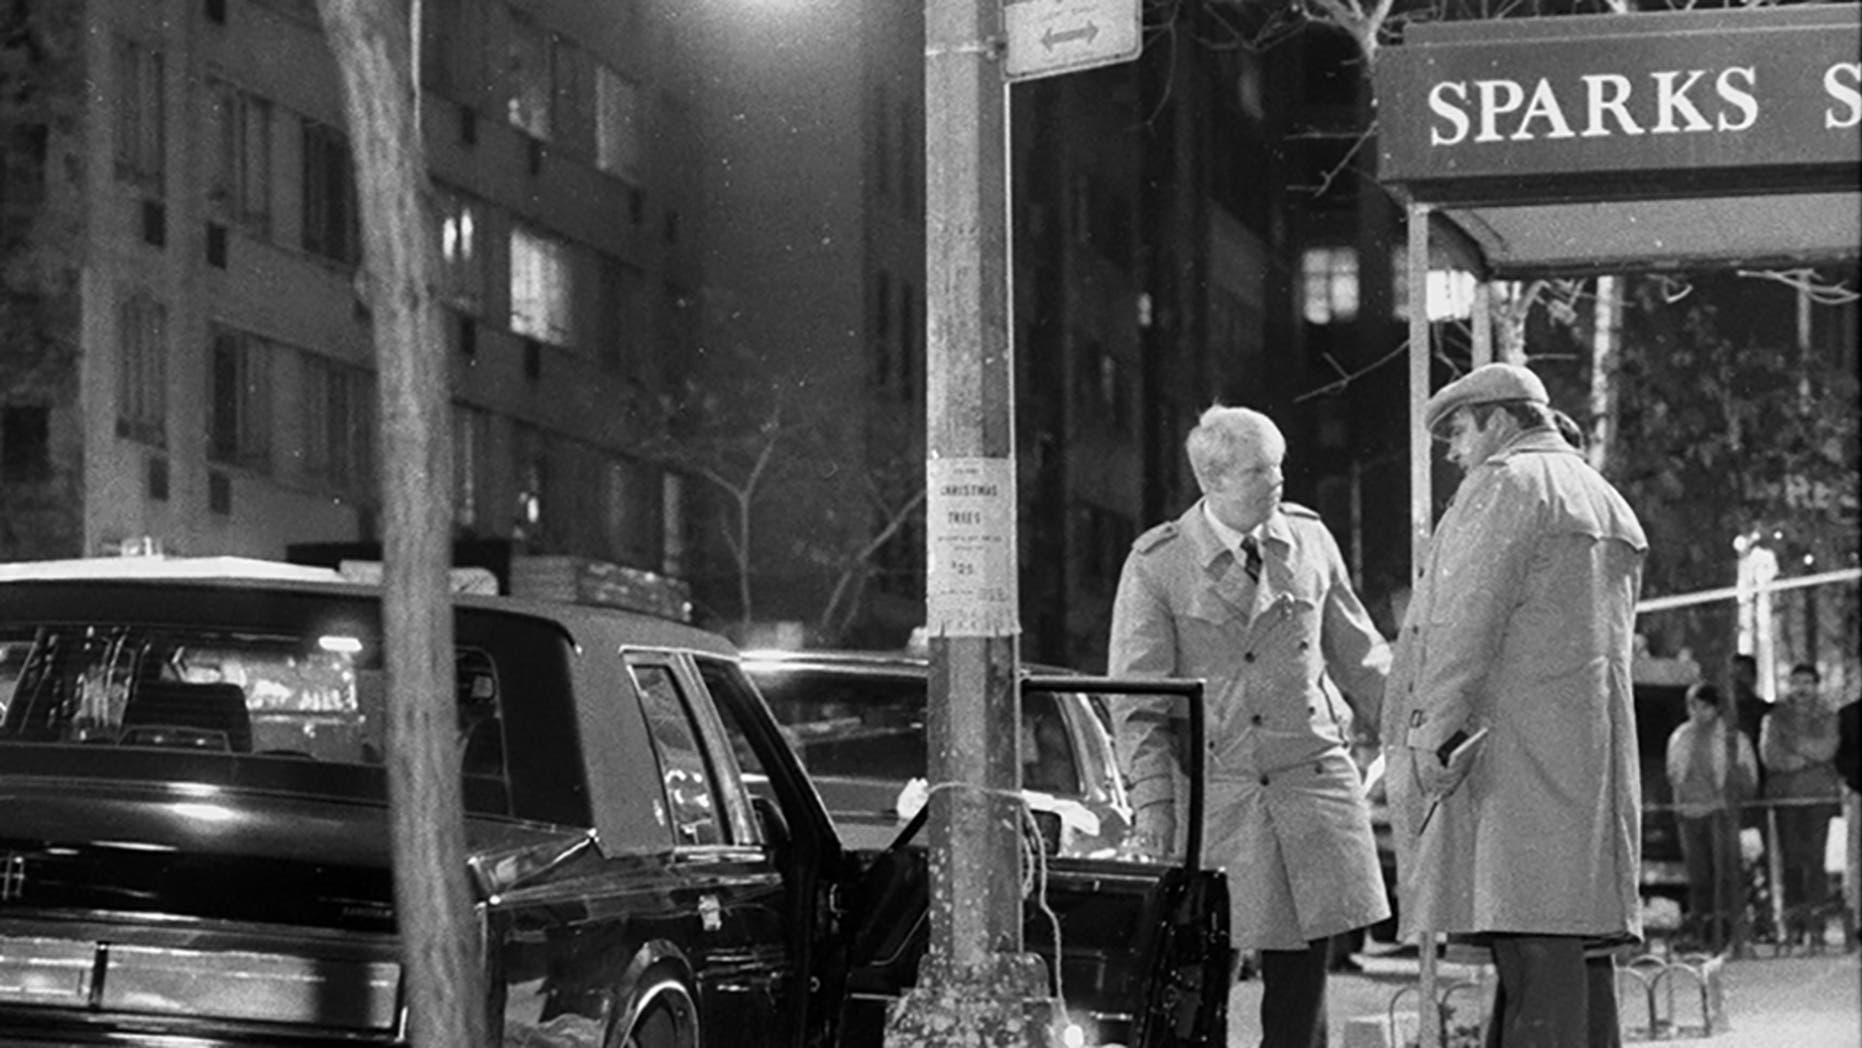 Detectives stand over the body of reputed mob boss Paul Castellano, after his execution on 46th St. in Dec. 1985 (Photo By: Tom Monaster/NY Daily News via Getty Images)